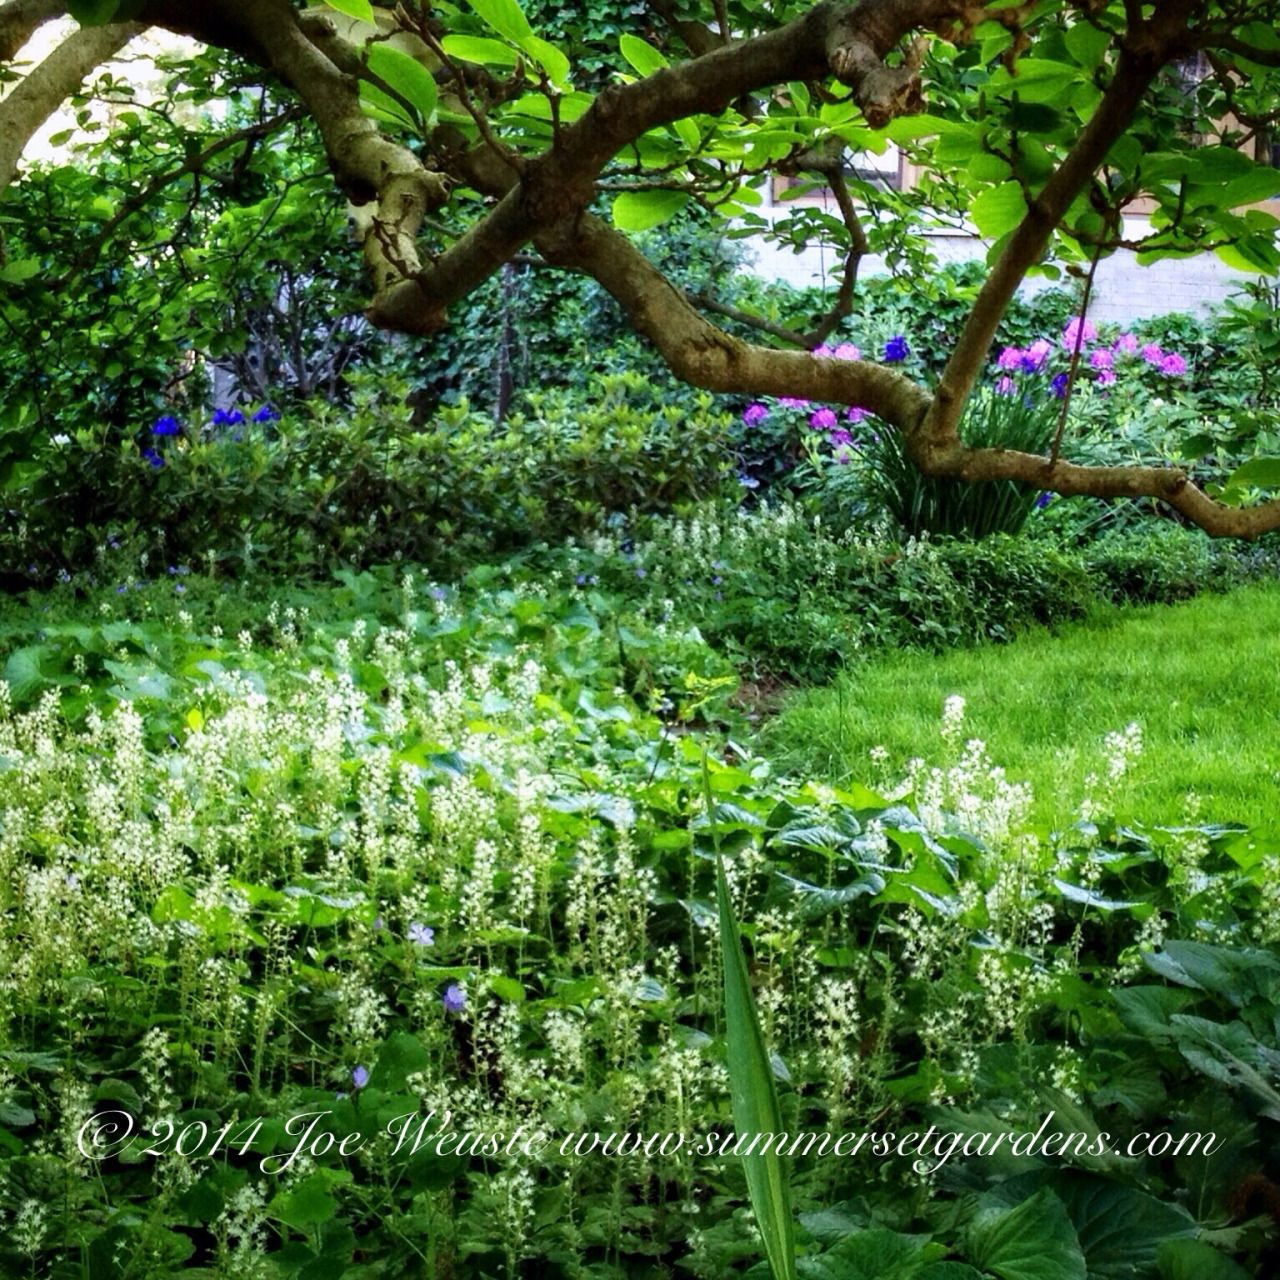 An example of how groundcovers can be used in the garden.   Landscape, garden design and construction services in the NY and NJ areas.  Summerset Gardens Elegant Landscape Design, Fine Workmanship   845-590-7306  http://www.summersetgardens.com